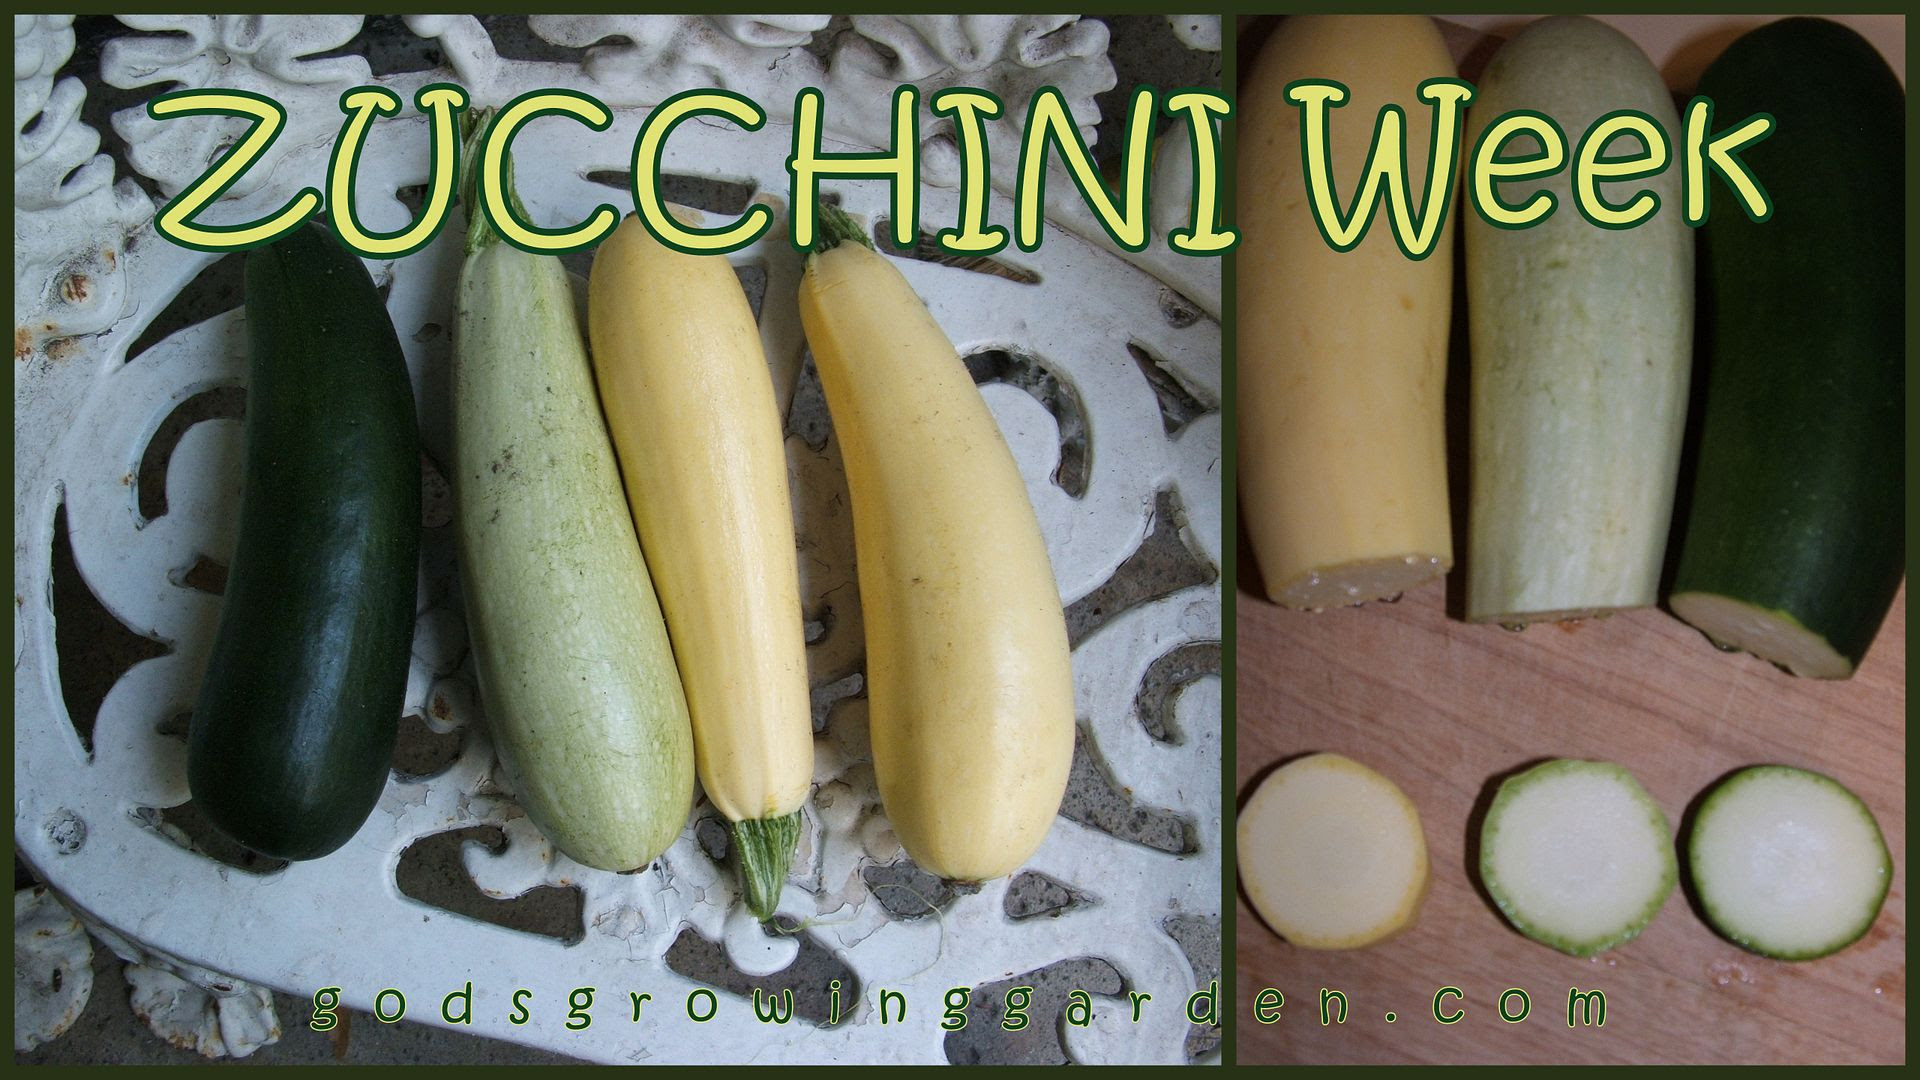 zucchini by Angie Ouellette-Tower for godsgrowinggarden.com photo 2012-08-01_zps2c472265.jpg